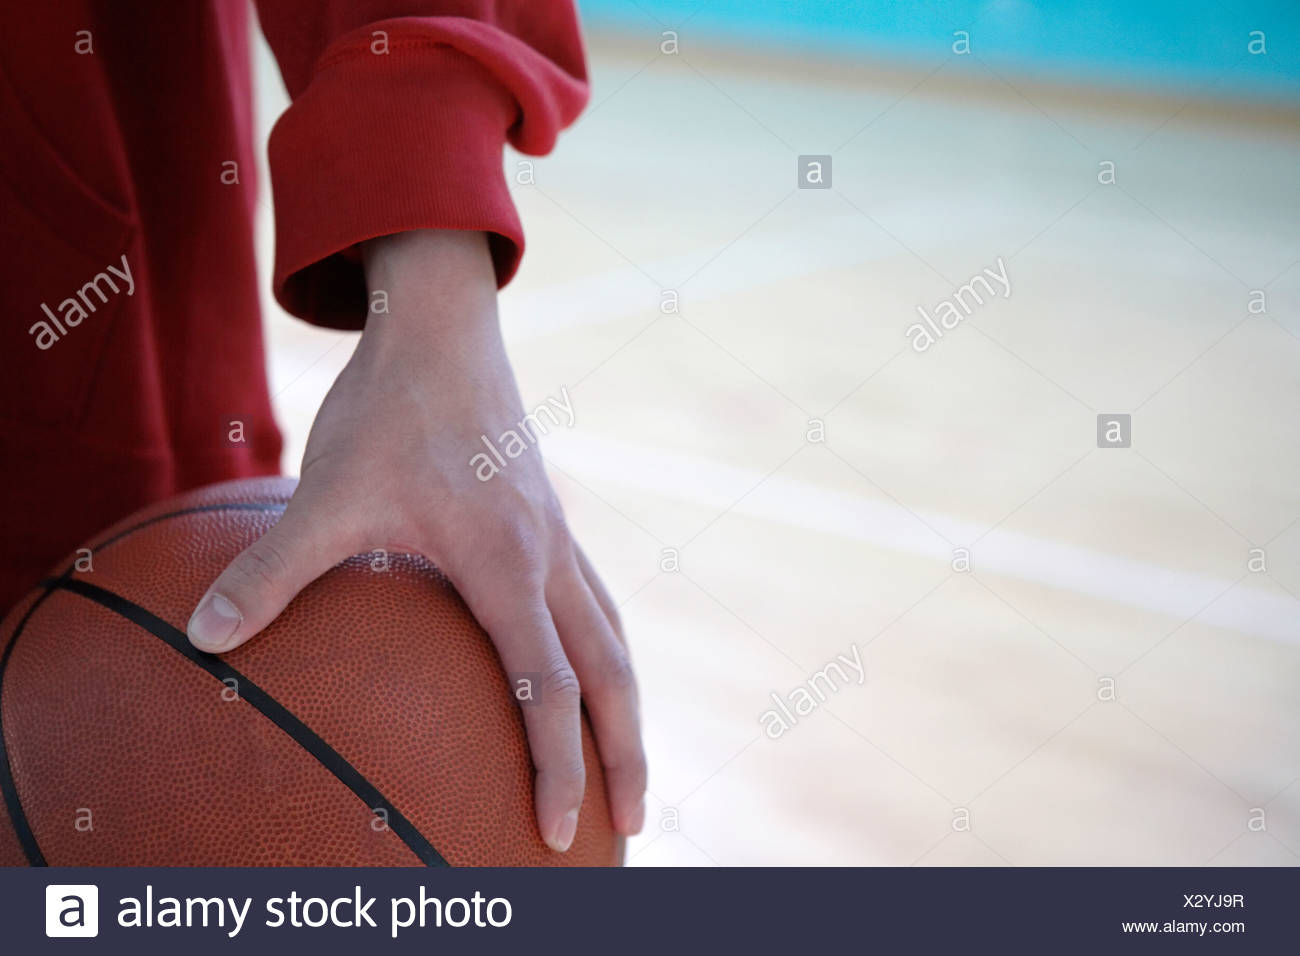 Person Holding A Basketball - Stock Image